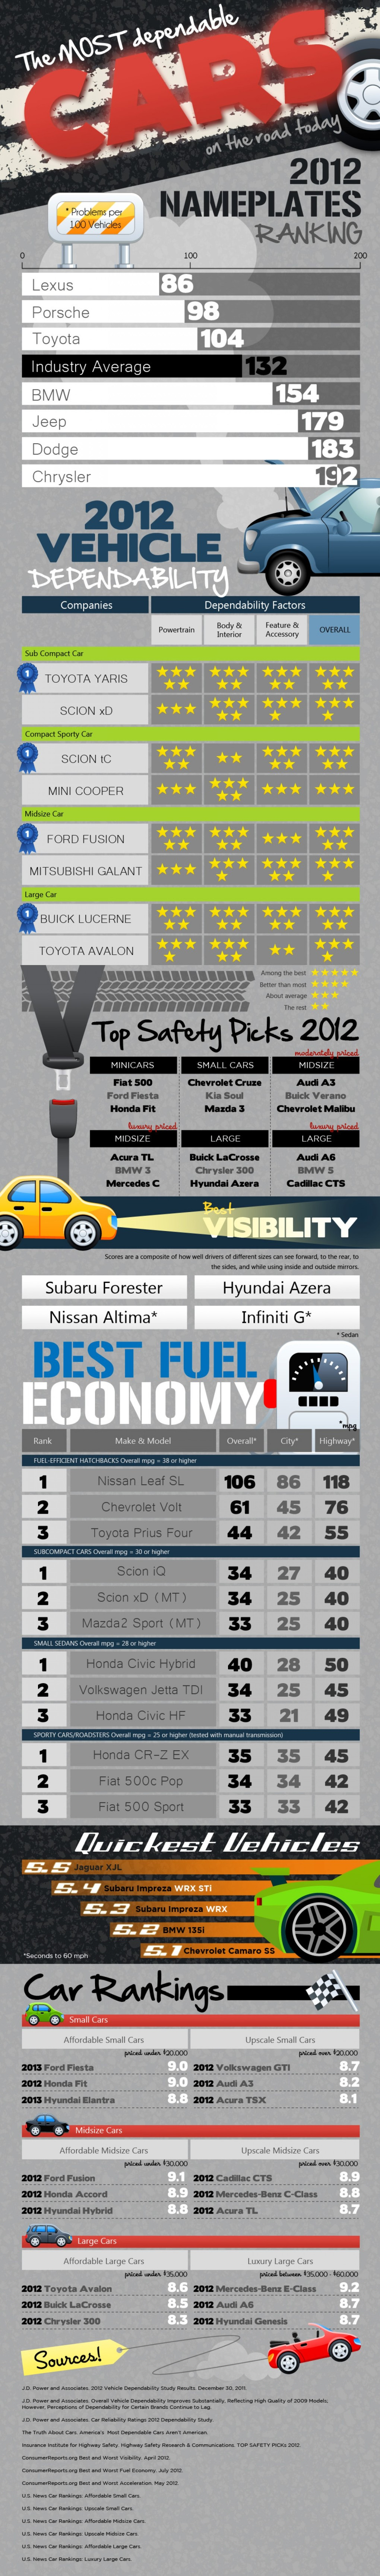 9. The Most Dependable Cars on the Road Today